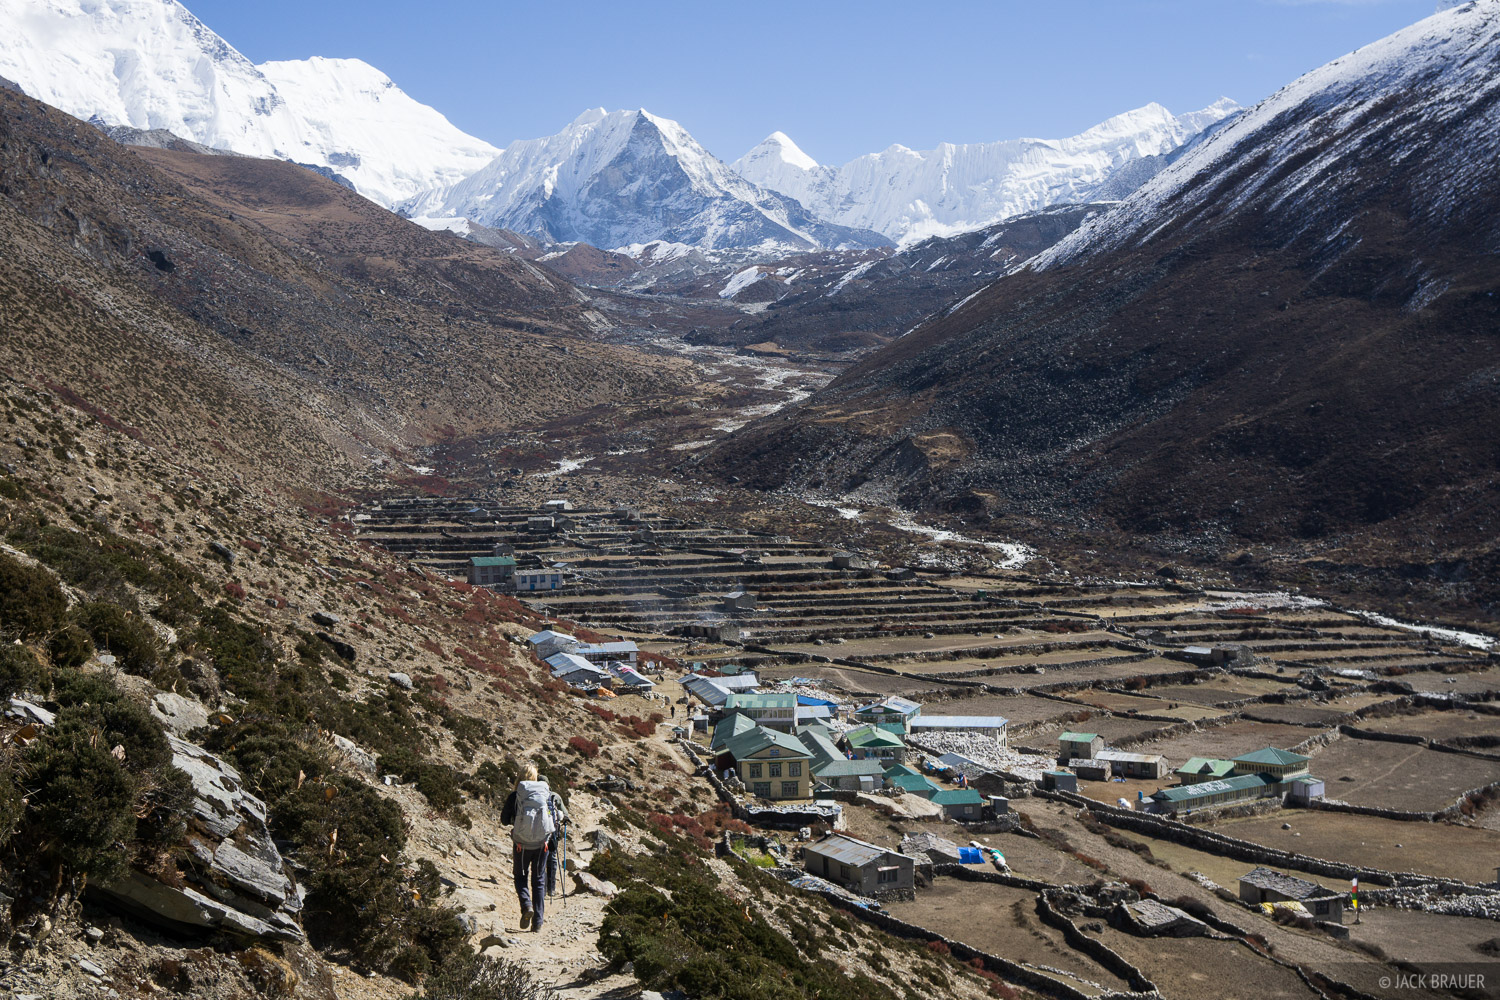 Hiking into the village of Dingboche.